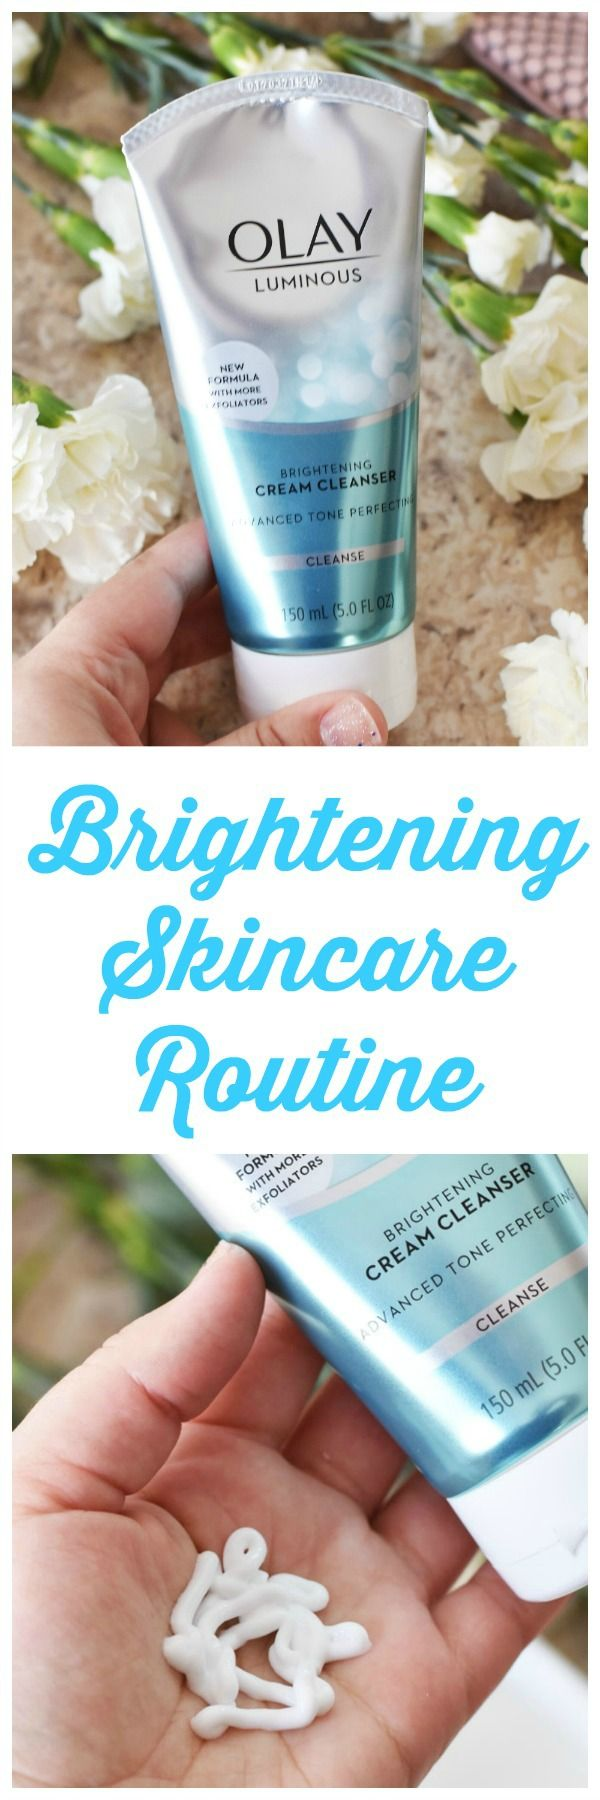 My Brightening Skincare Routine- Check out the Olay Skin Advisor Tool to get your tailored skincare regimen. #ad #28DaysofOlay